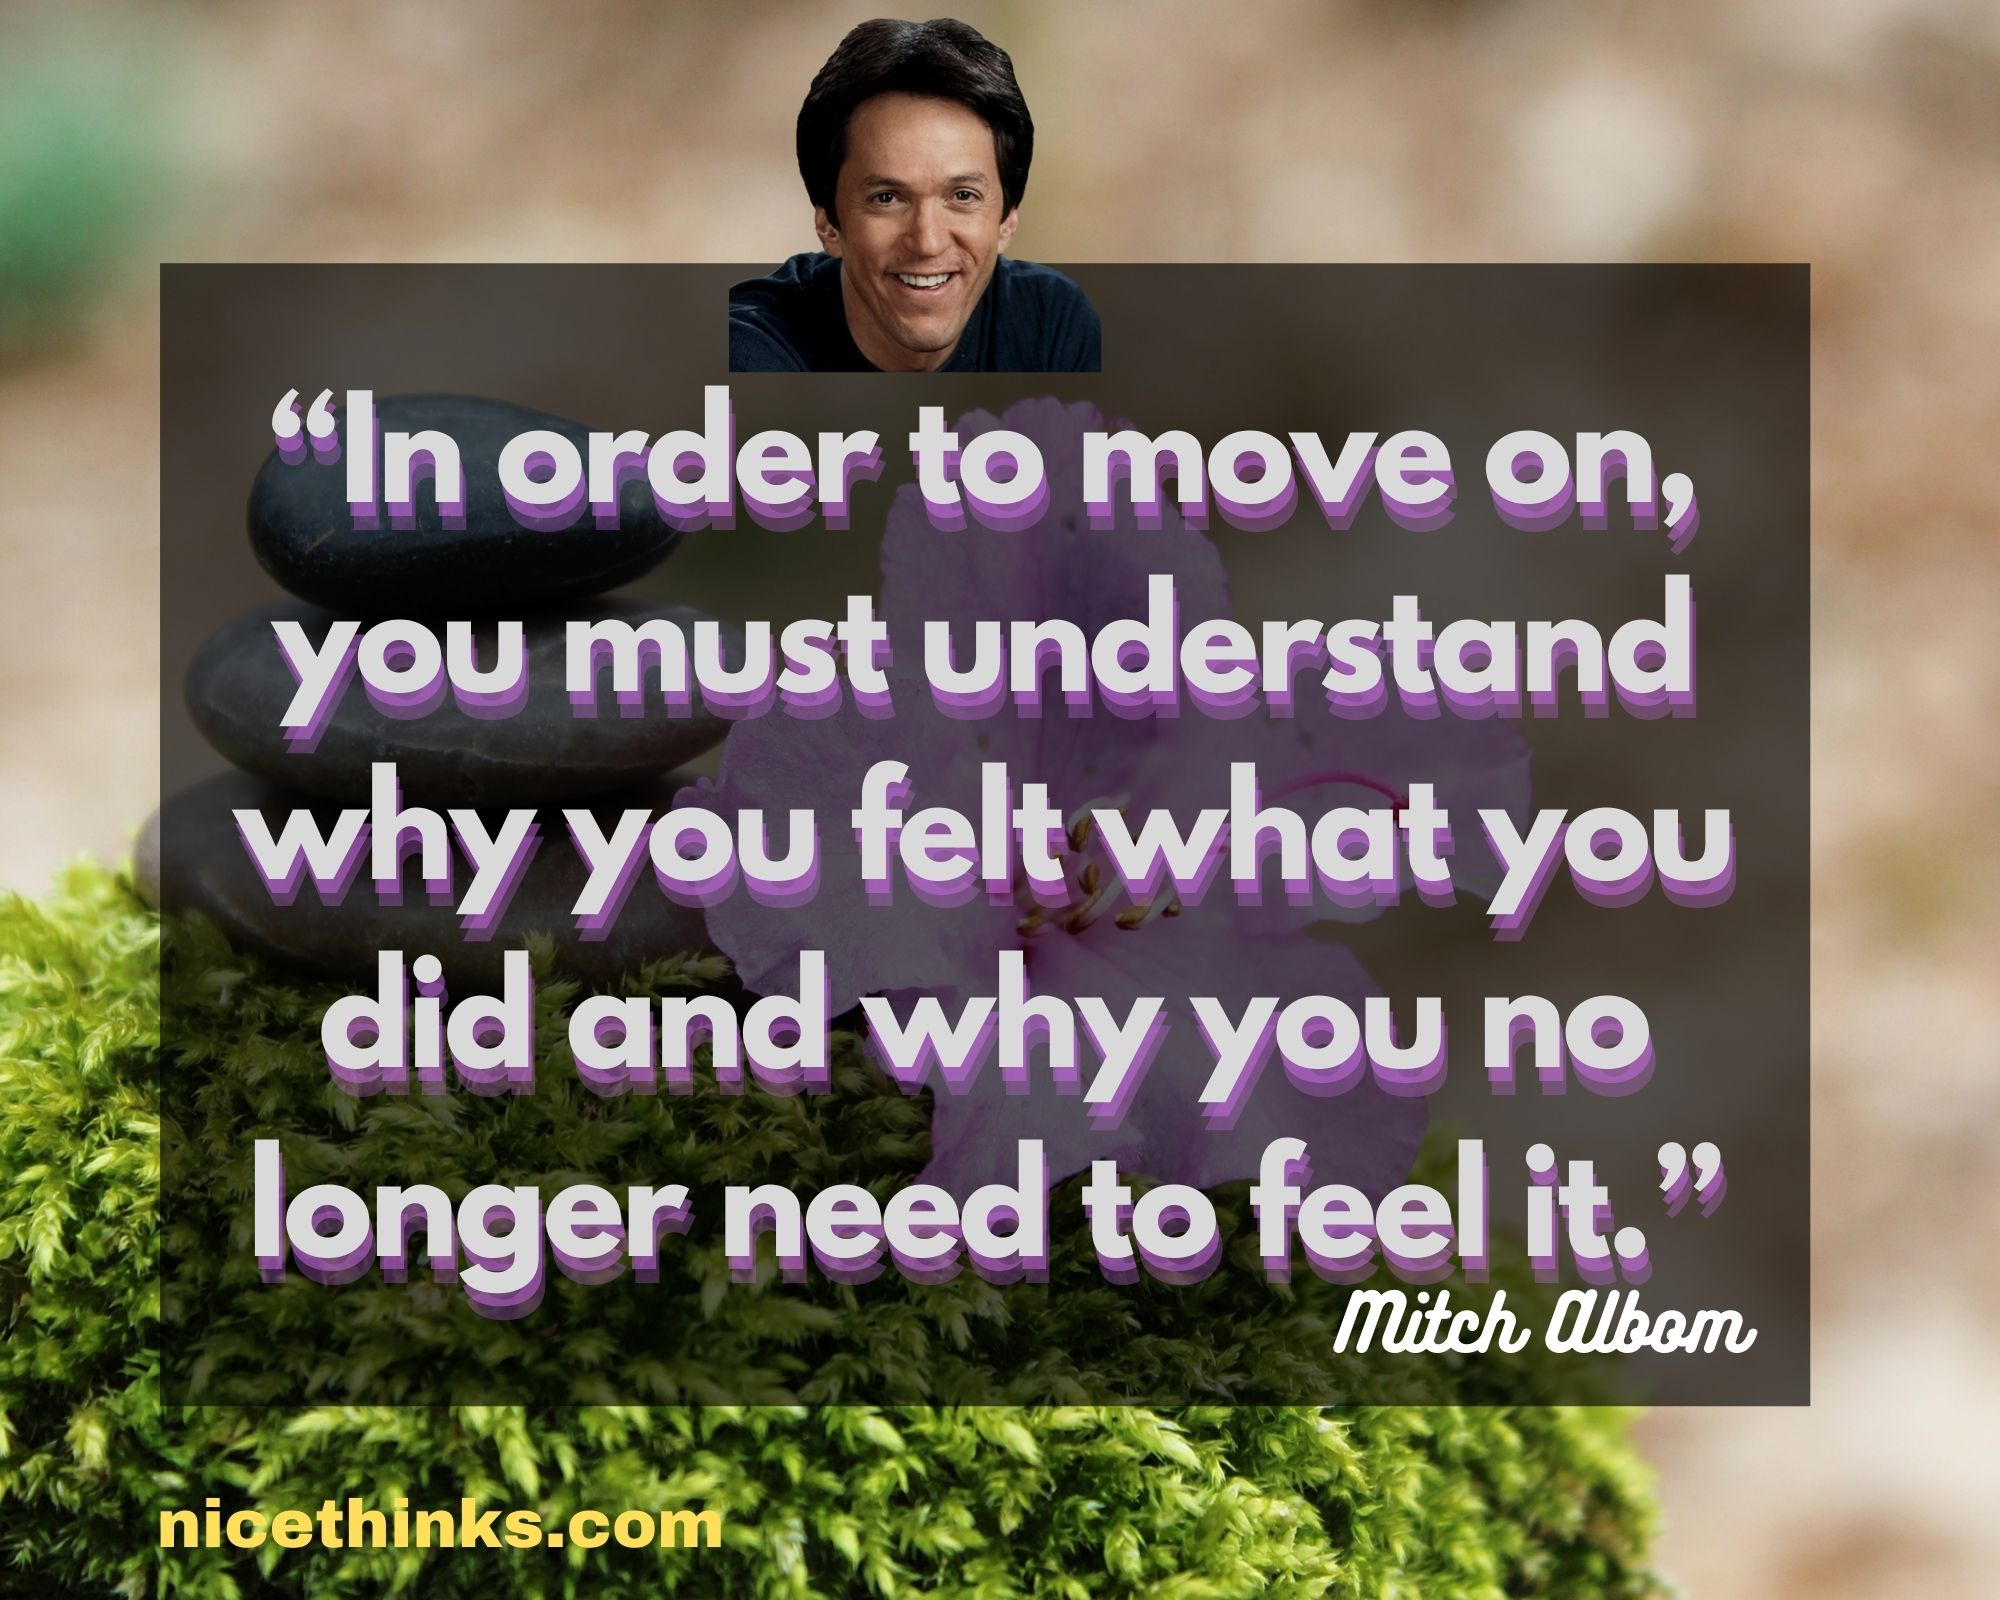 Quotes From Mitch Albom